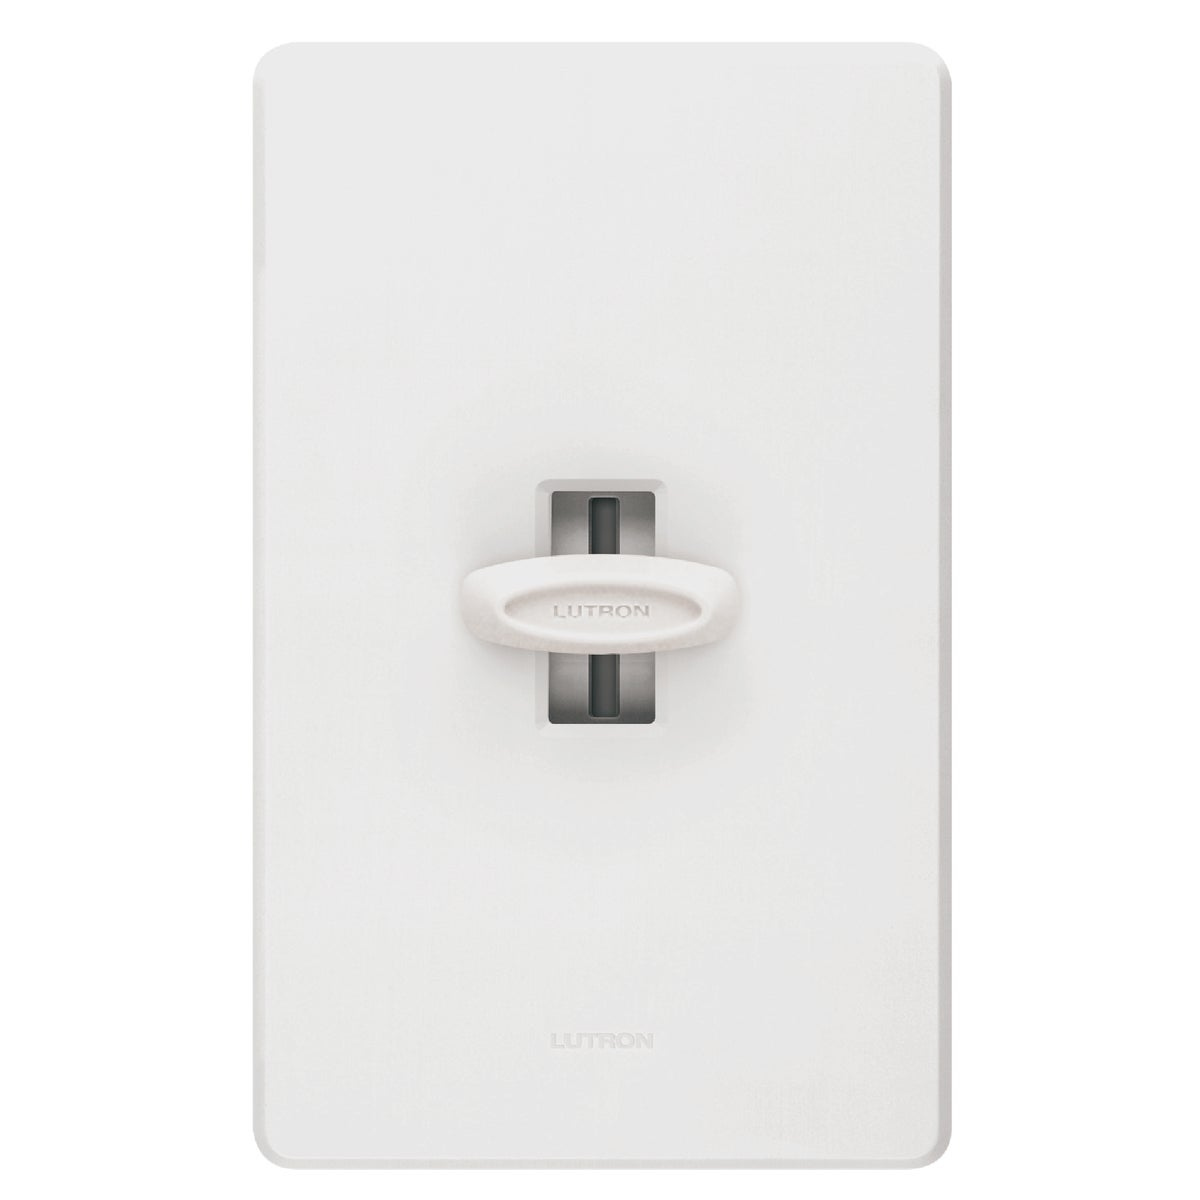 IVORY SLIDE DIMMER - S-600H-IV by Lutron Elect Co Inc